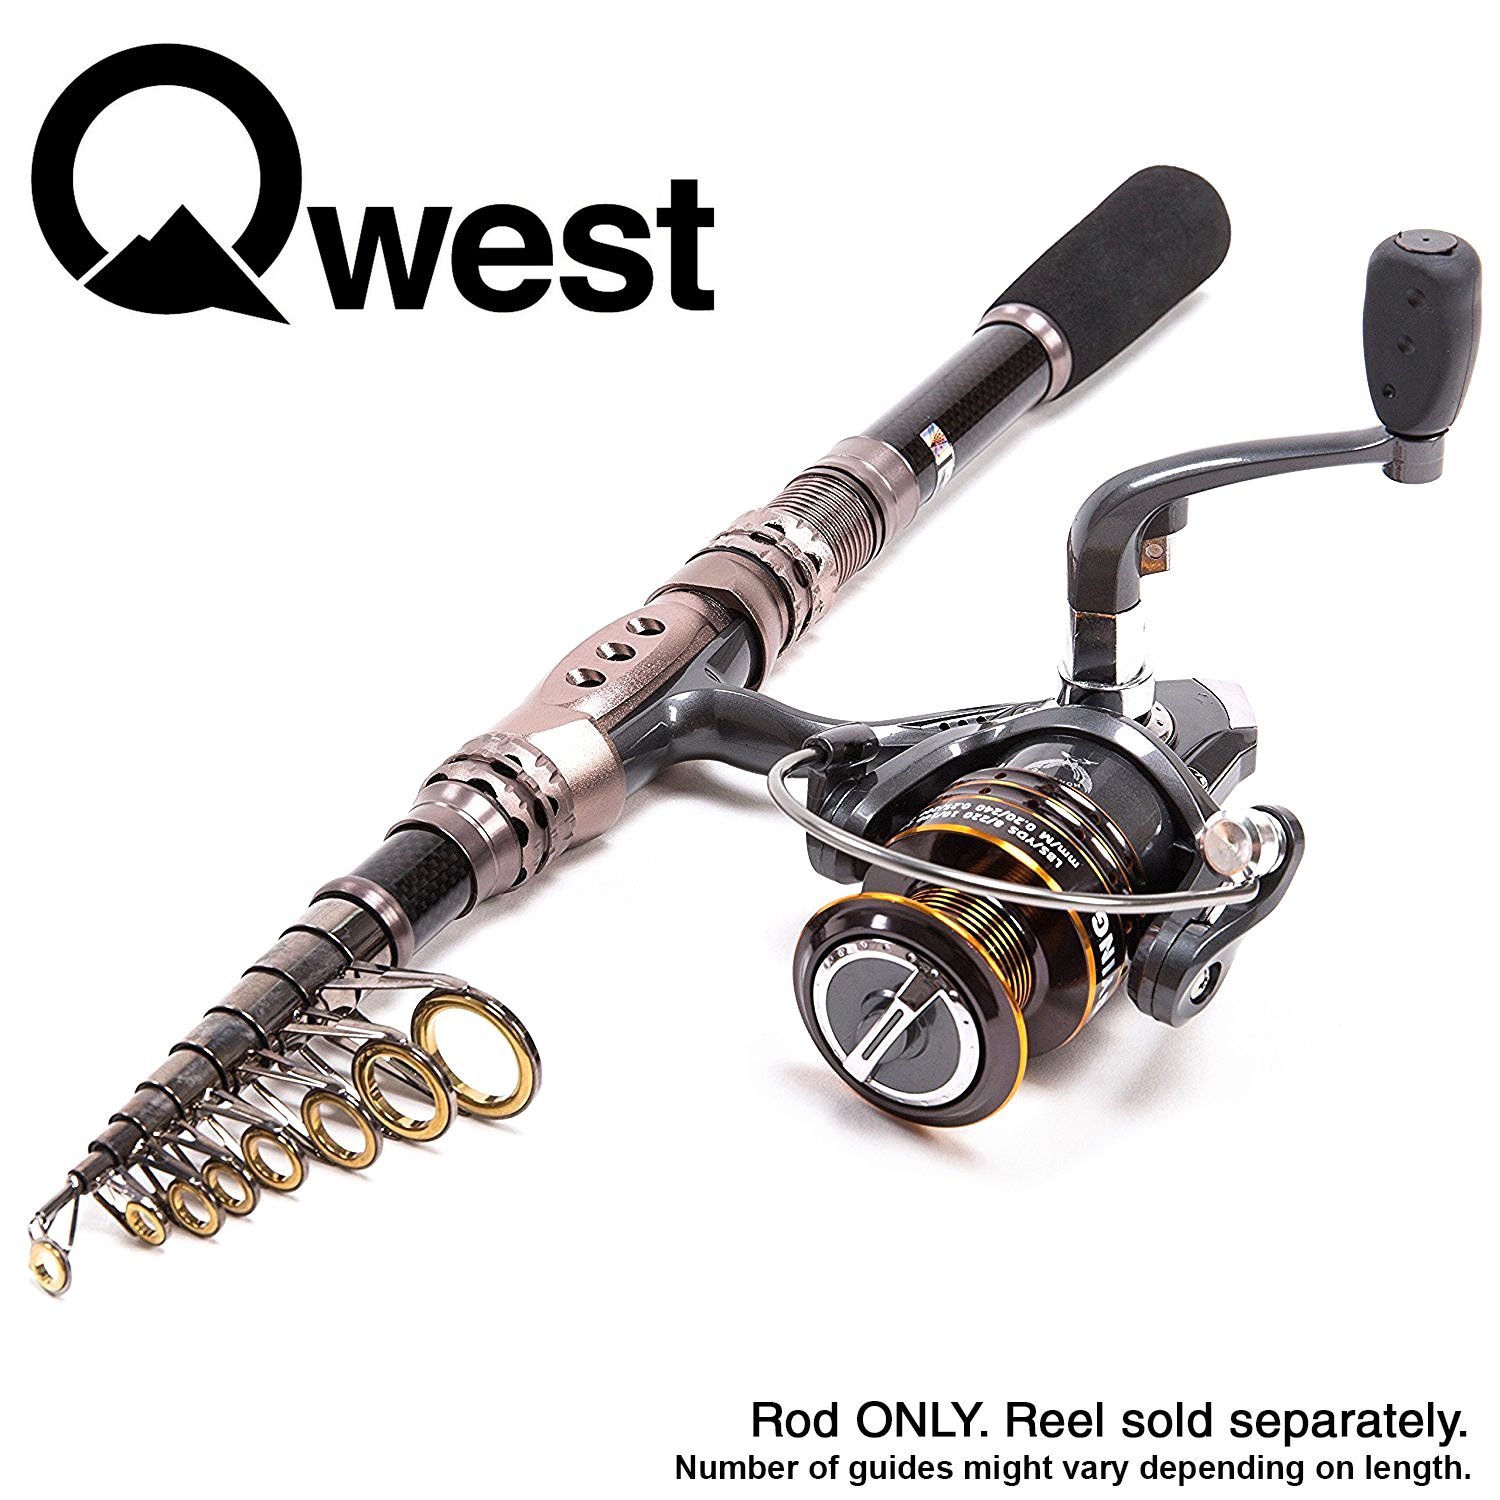 Qwest Telescopic Spinning Fishing Rod Carb Reel Bait Lure Line by Qwest